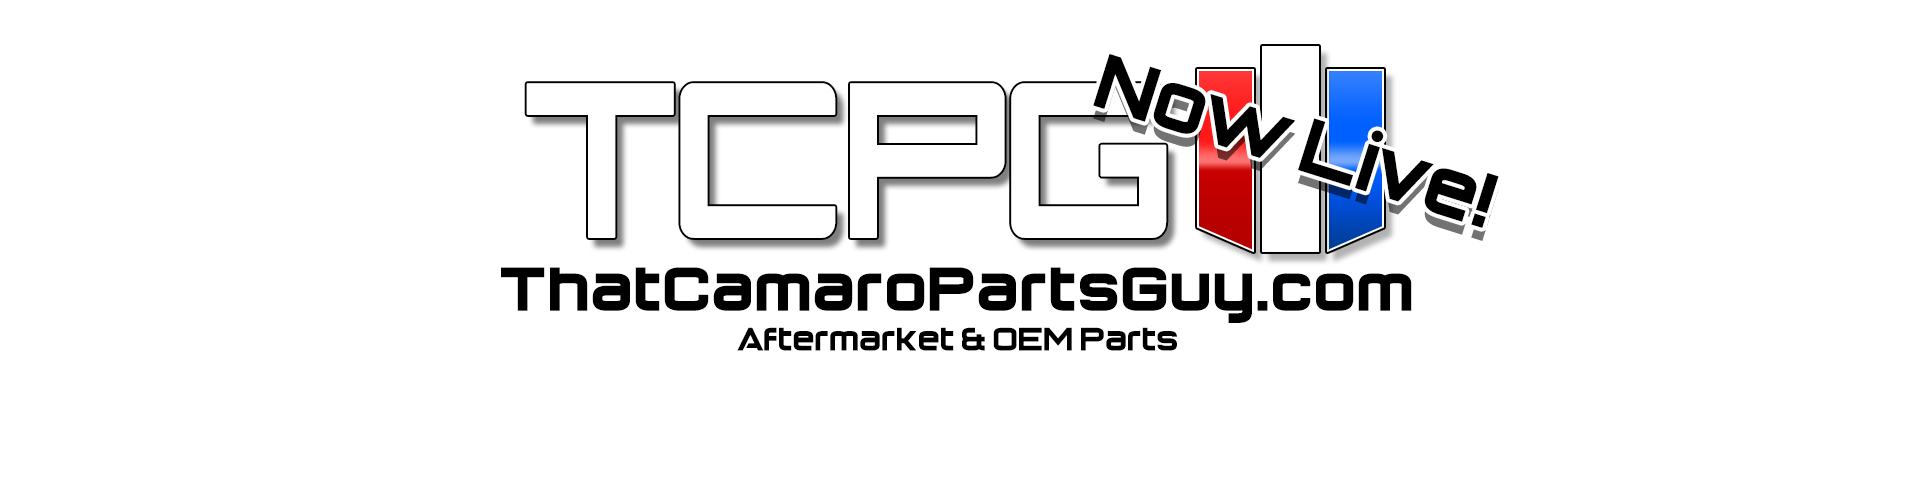 That GM Parts Guy Banner 1